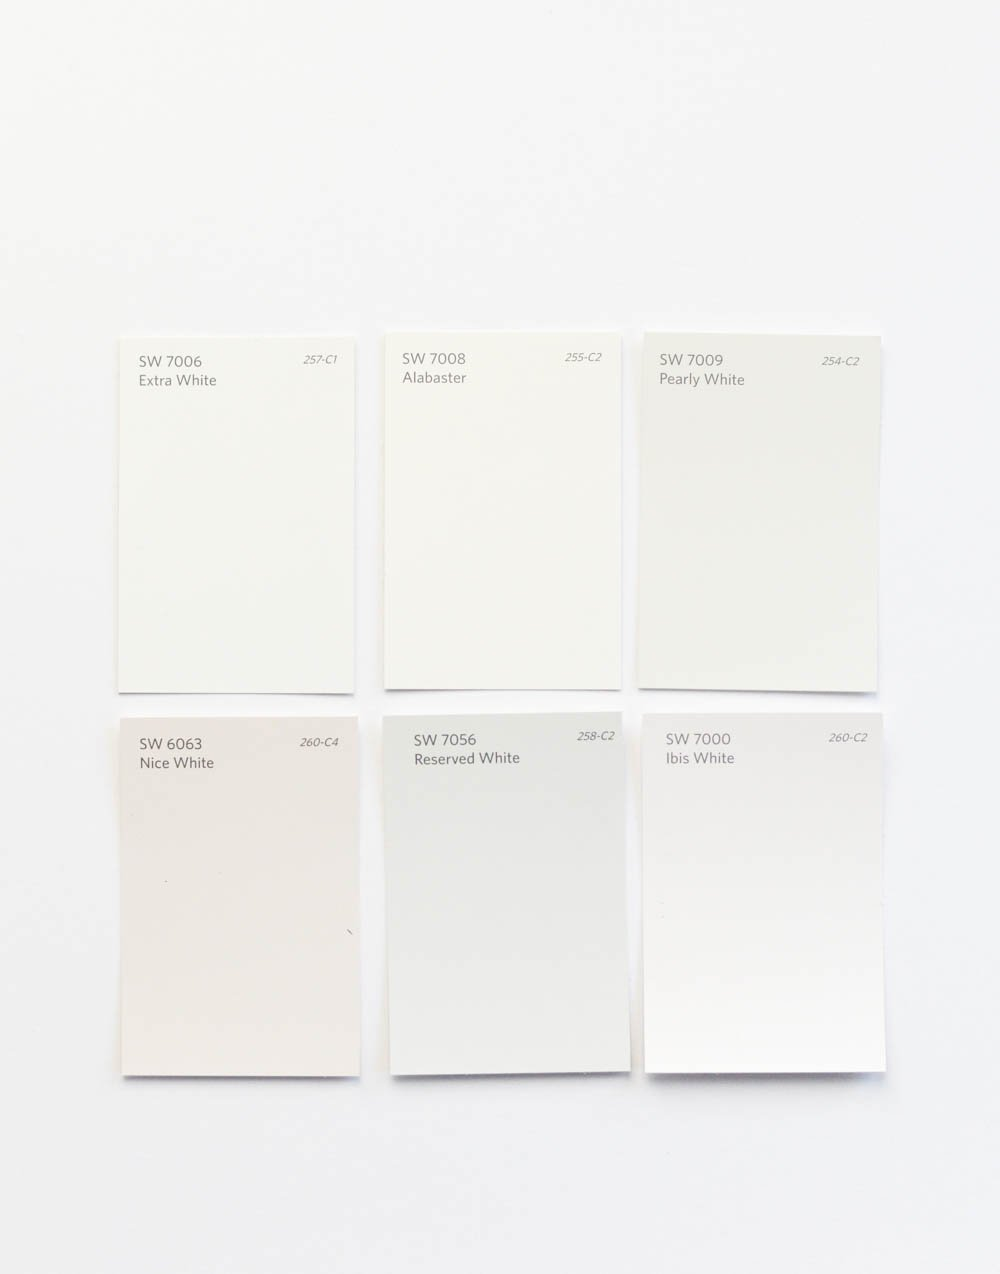 Sw Proclassic Sw Emerald Urethane Trim Enamel Water Based Purdy White Dove 3 8 Or Sw M In 2020 Best White Paint White Paint Colors Sherwin Williams White Paint Colors